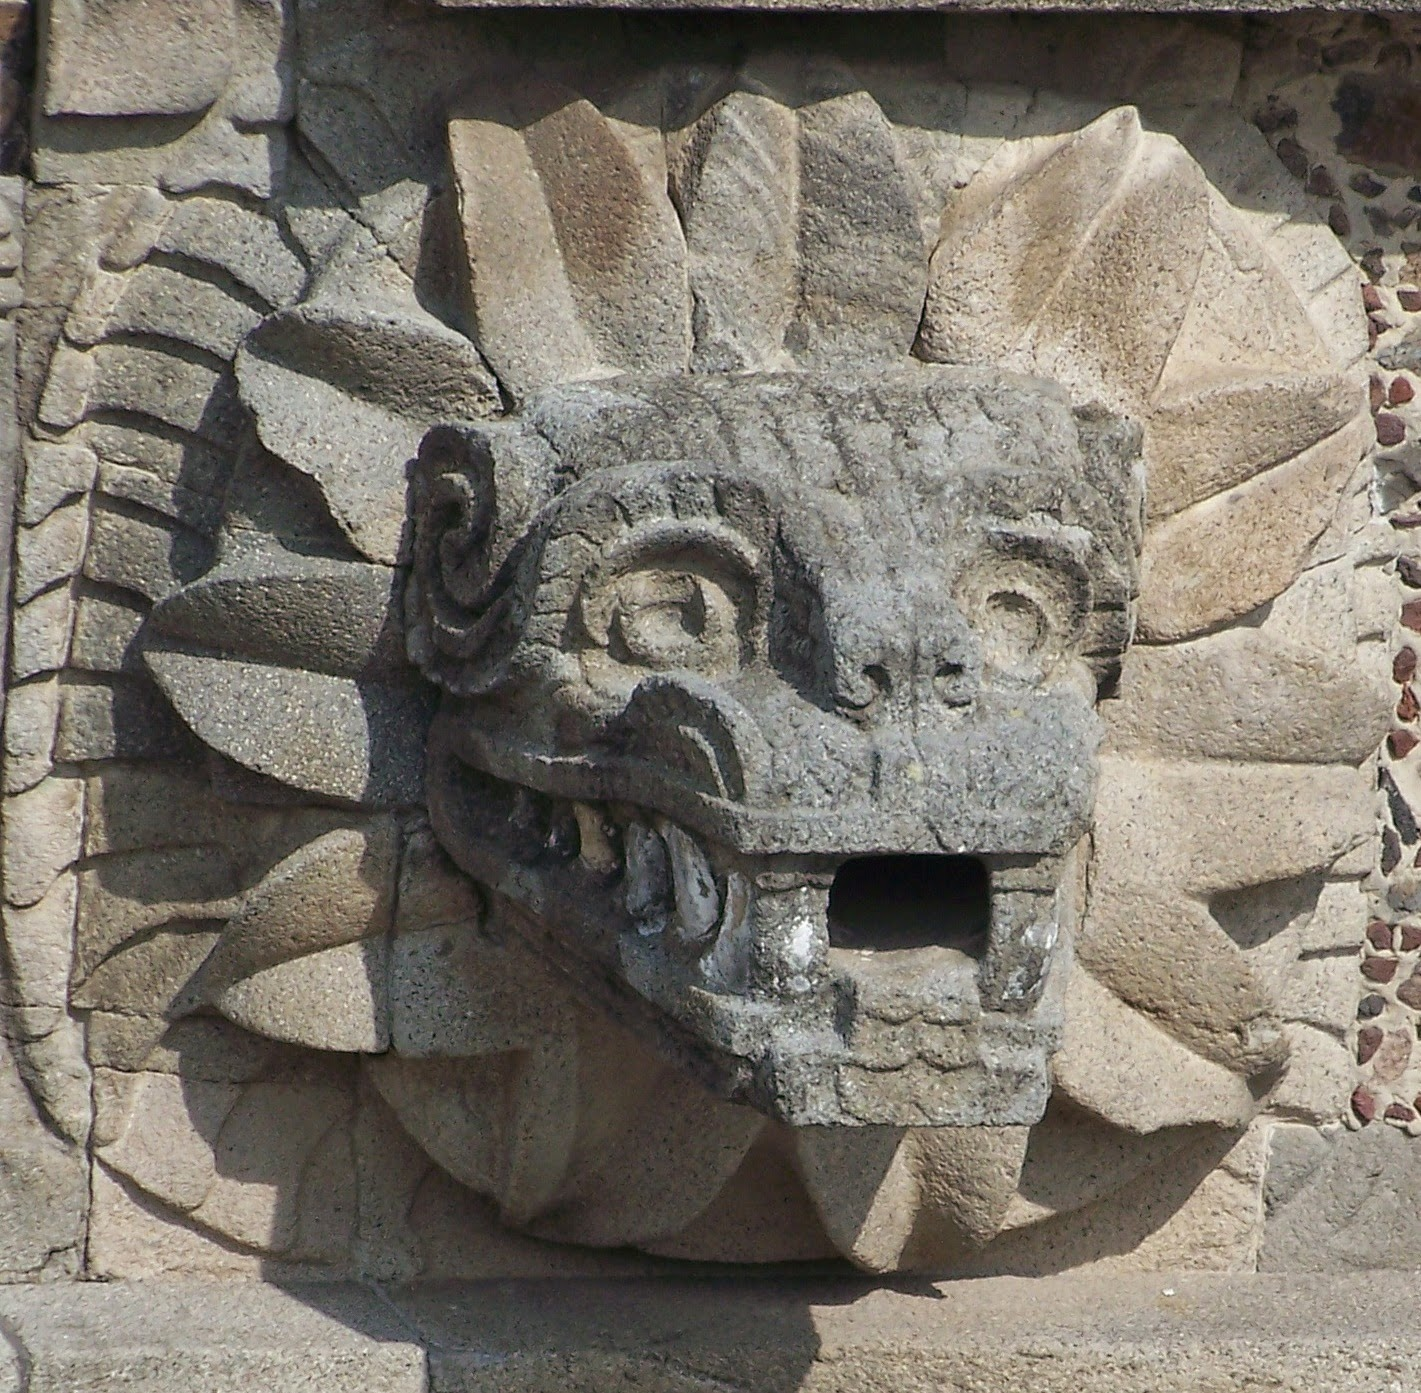 Temple of Quetzalcoatl, Teotihuacan, Feathered Serpent.